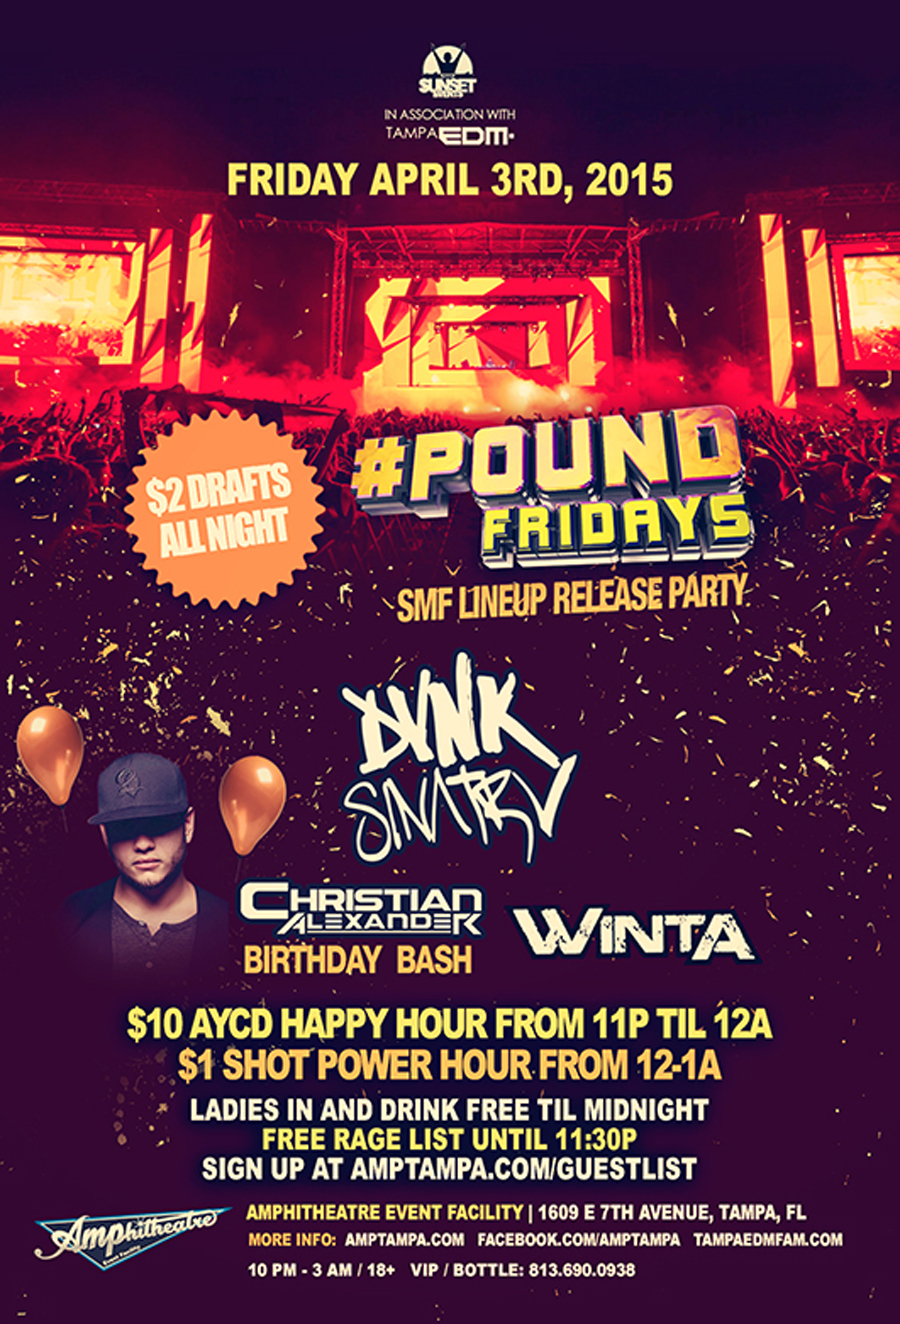 Sunset Music Festival Lineup Release Party at #POUND Fridays